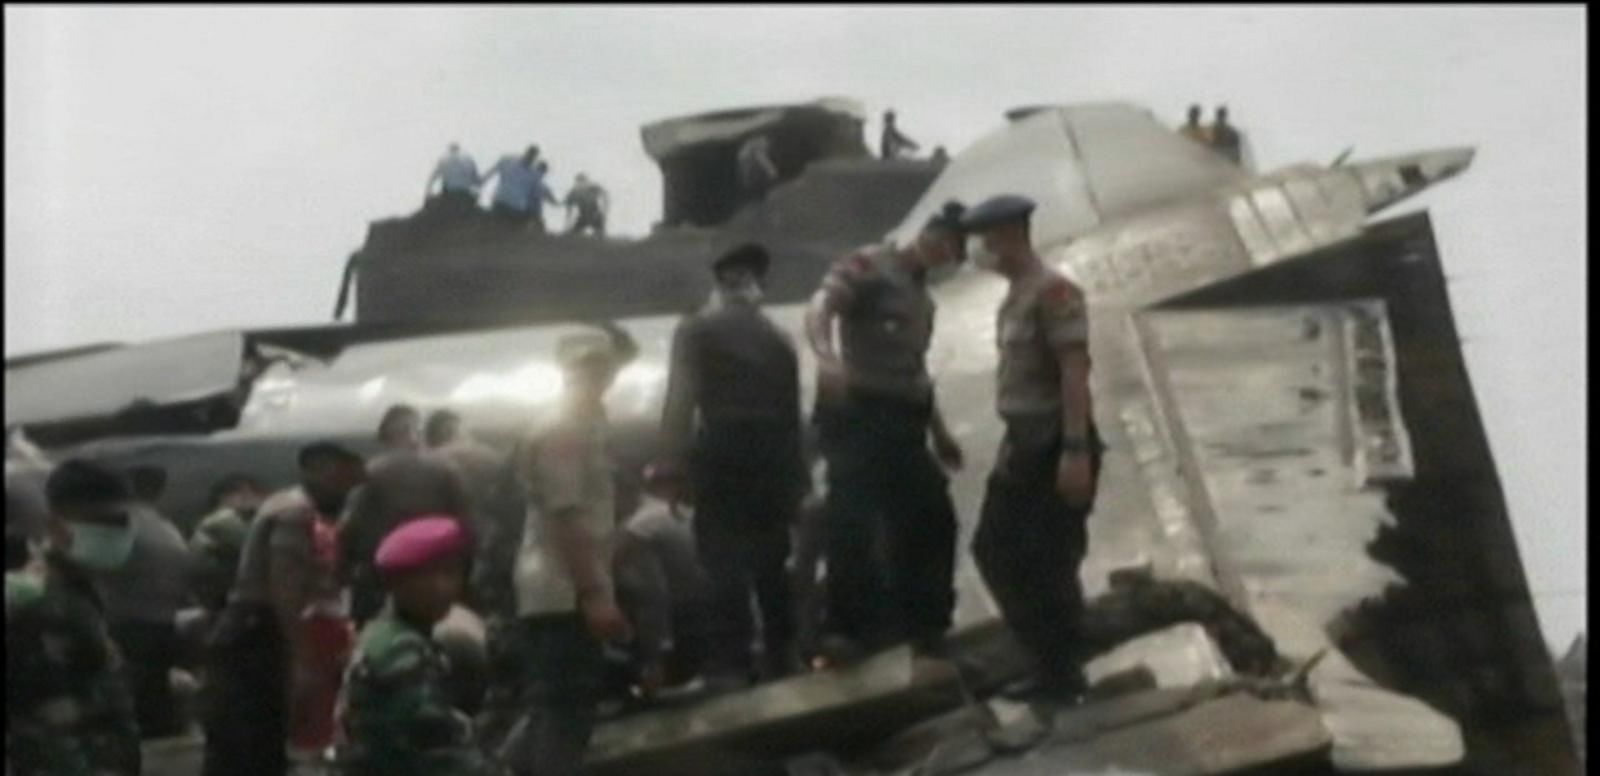 VIDEO: 100+ Killed in Military Cargo Plane Crash in Indonesia